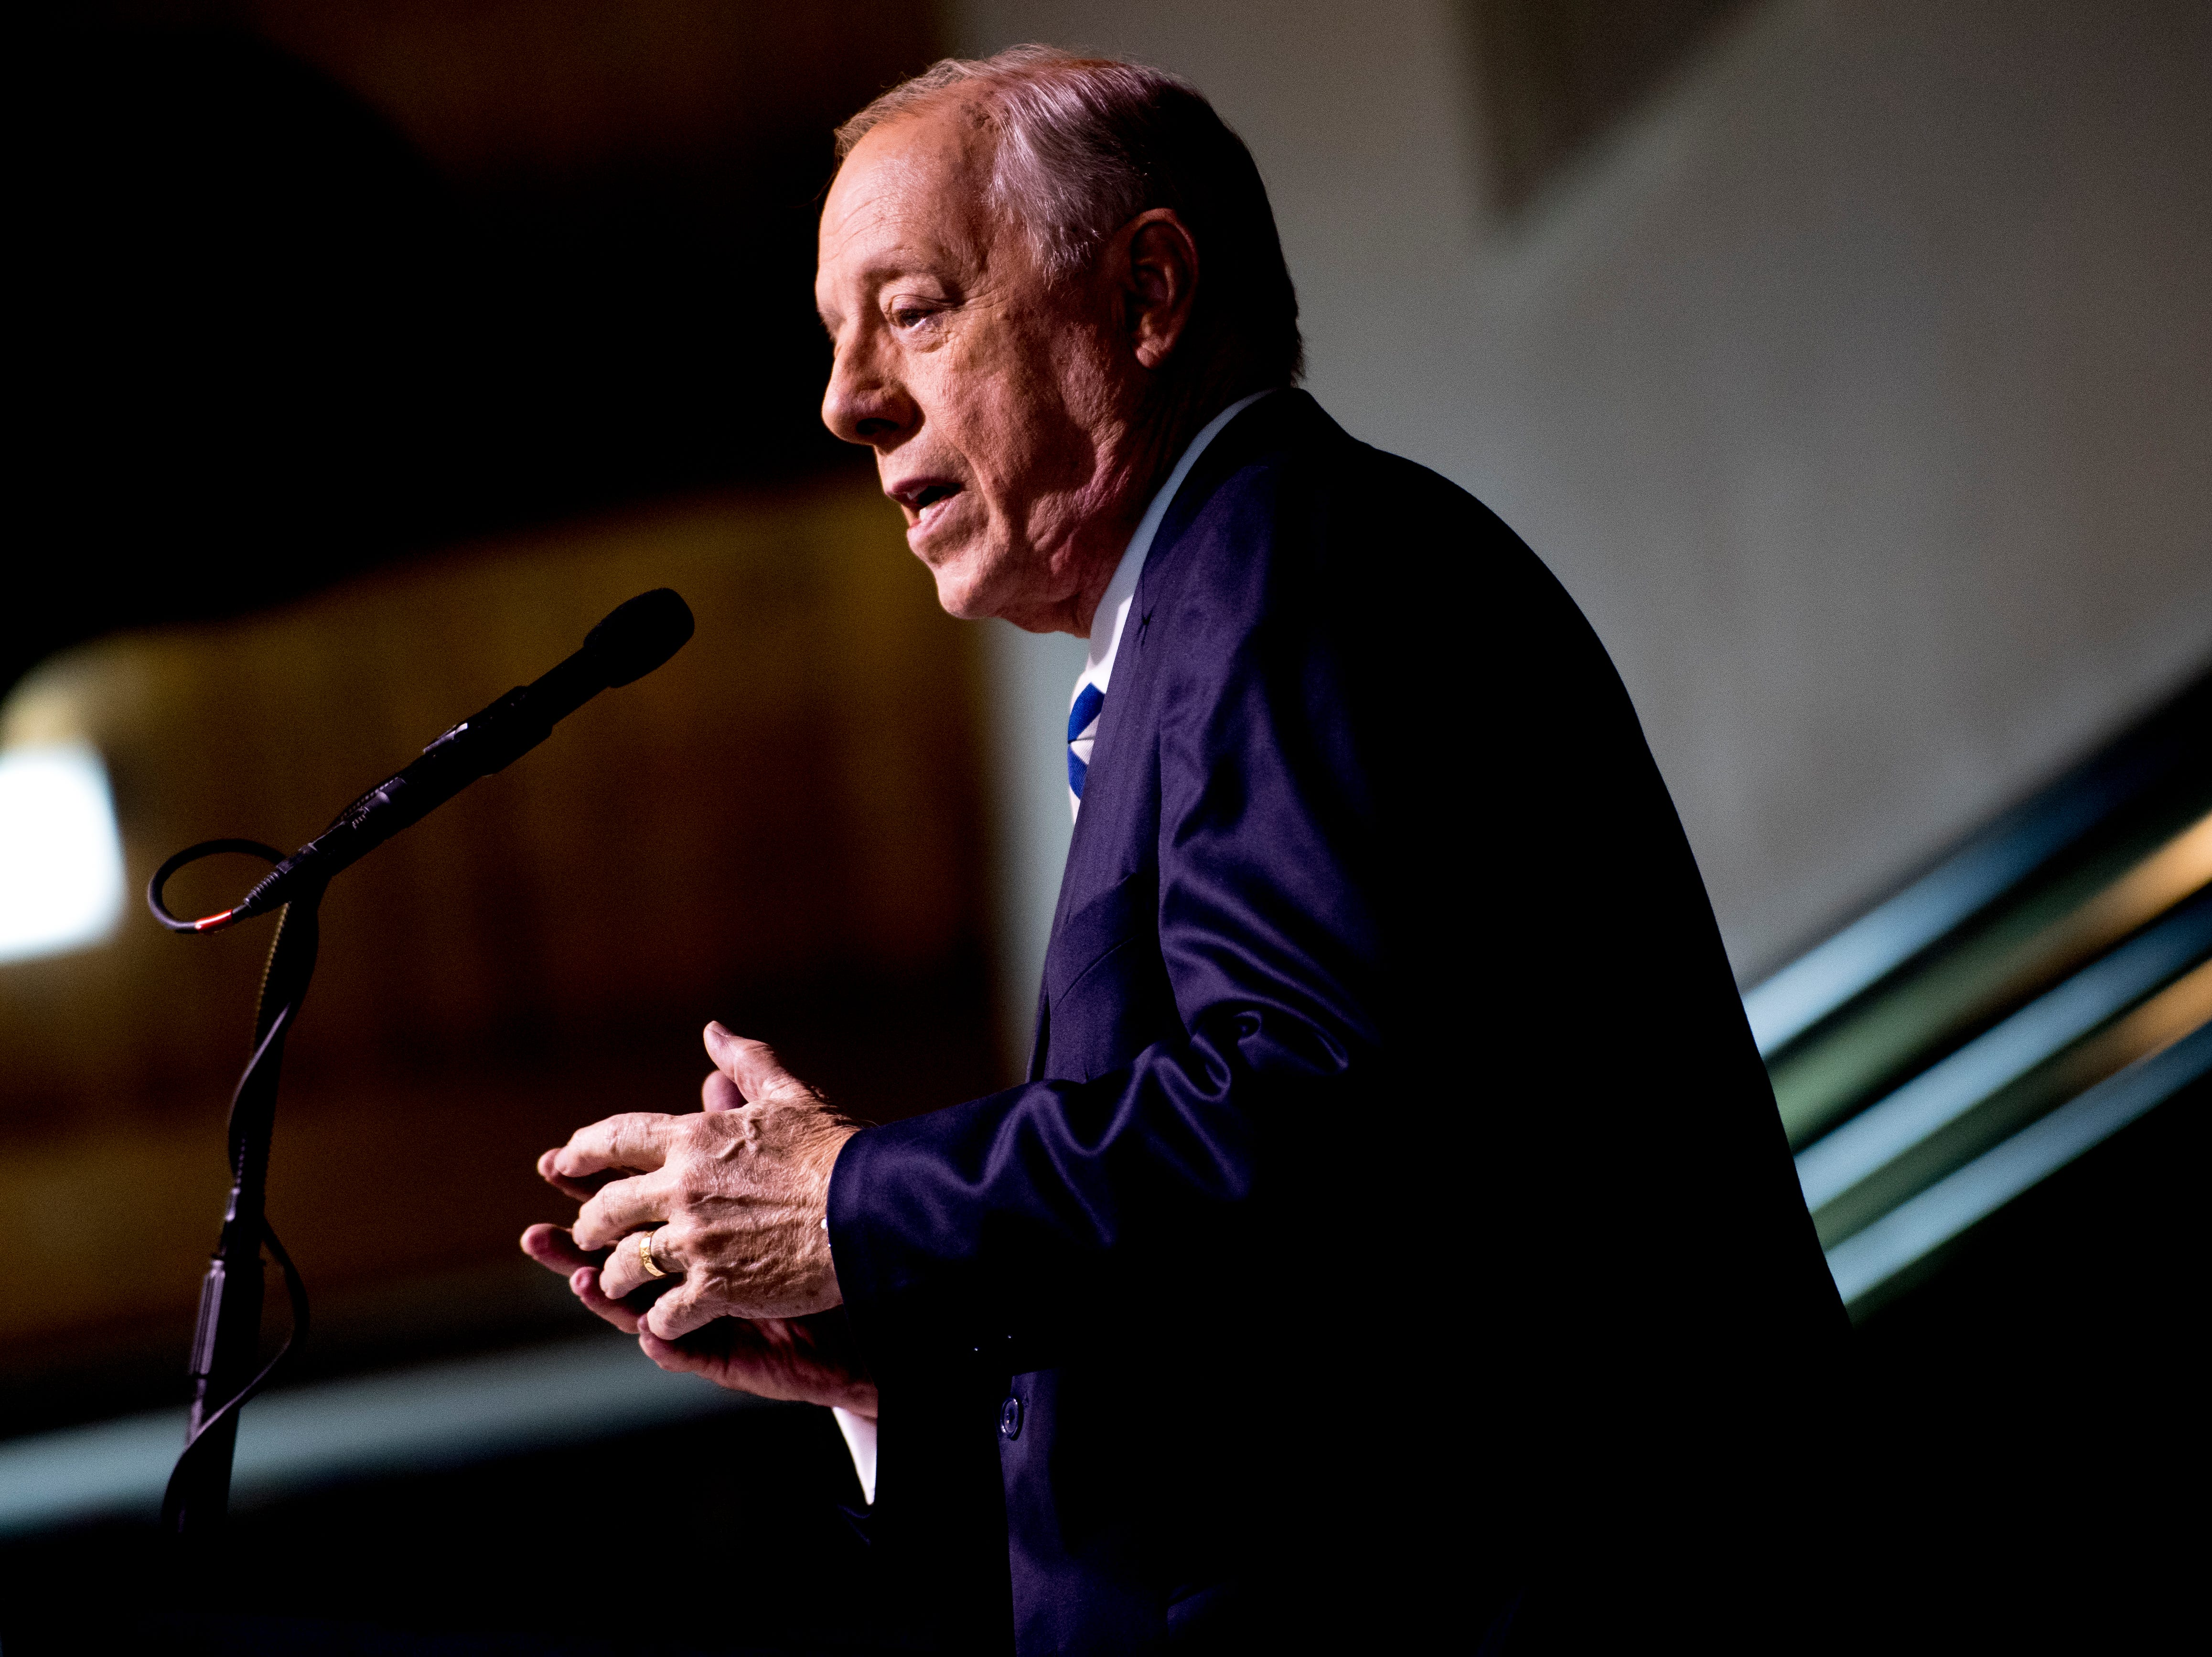 """Former Governor Phil Bredesen speaks during an """"Doing Better Together"""" Interfaith Lunch at the Bessie Smith Cultural Center in Chattanooga, Tennessee on Sunday, November 4, 2018. Former Governor Phil Bredesen, candidate for U.S. Senate, hosted the event to discuss the future of Tennessee and America."""